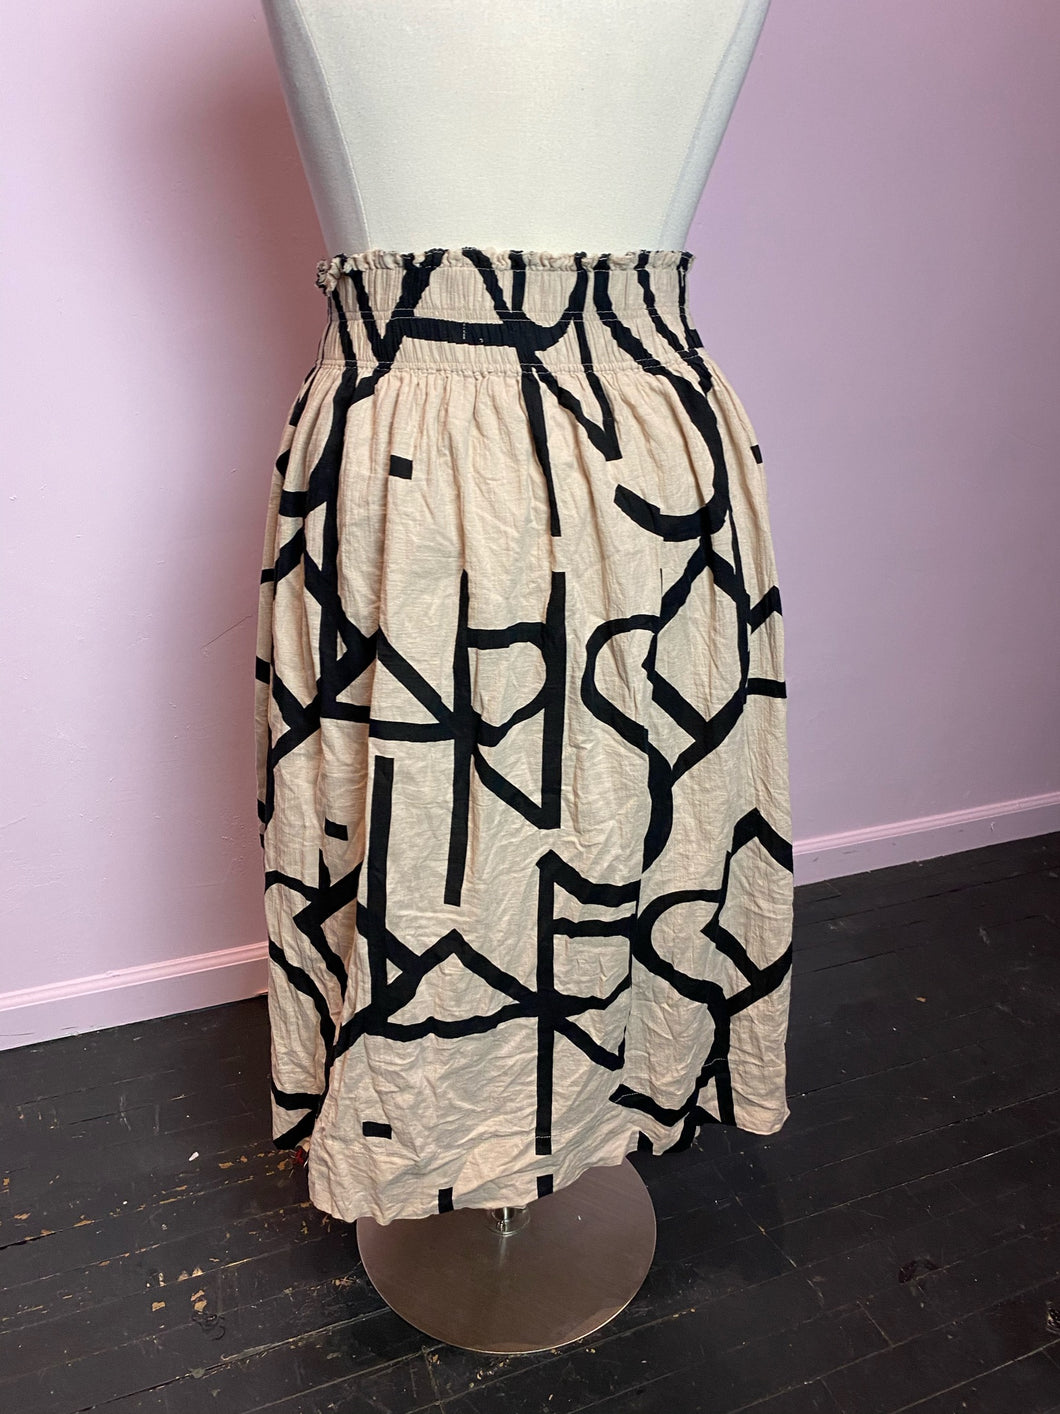 Tan Maxi Skirt with Black Letter Details by H&M, Size XL